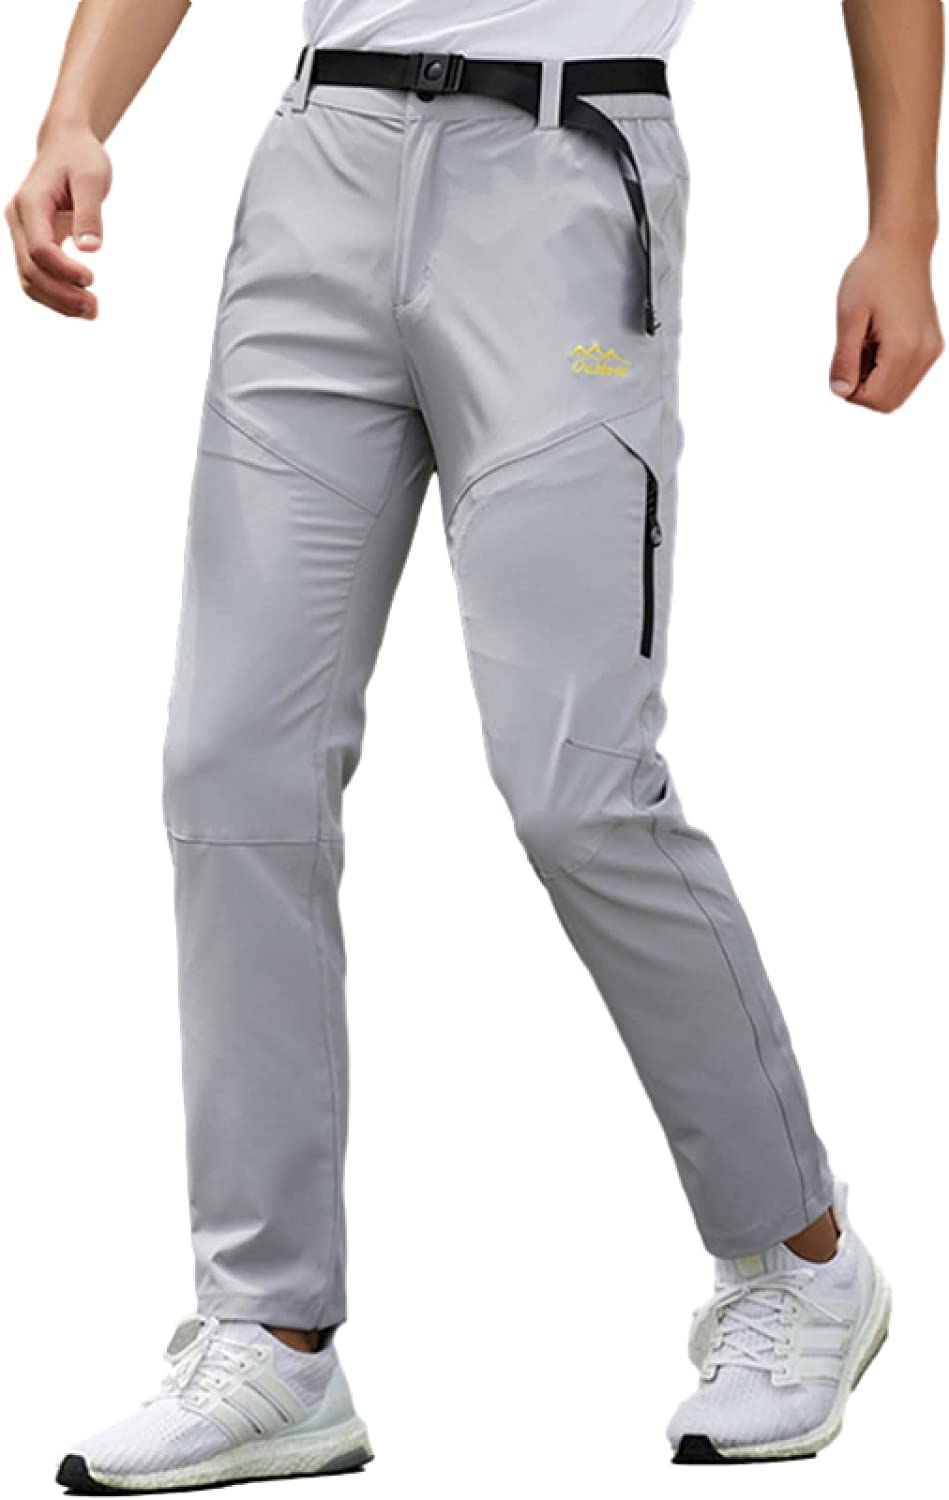 Men's Cargo Pants Four Seasons Style Outdoor Hiking Trousers Sim